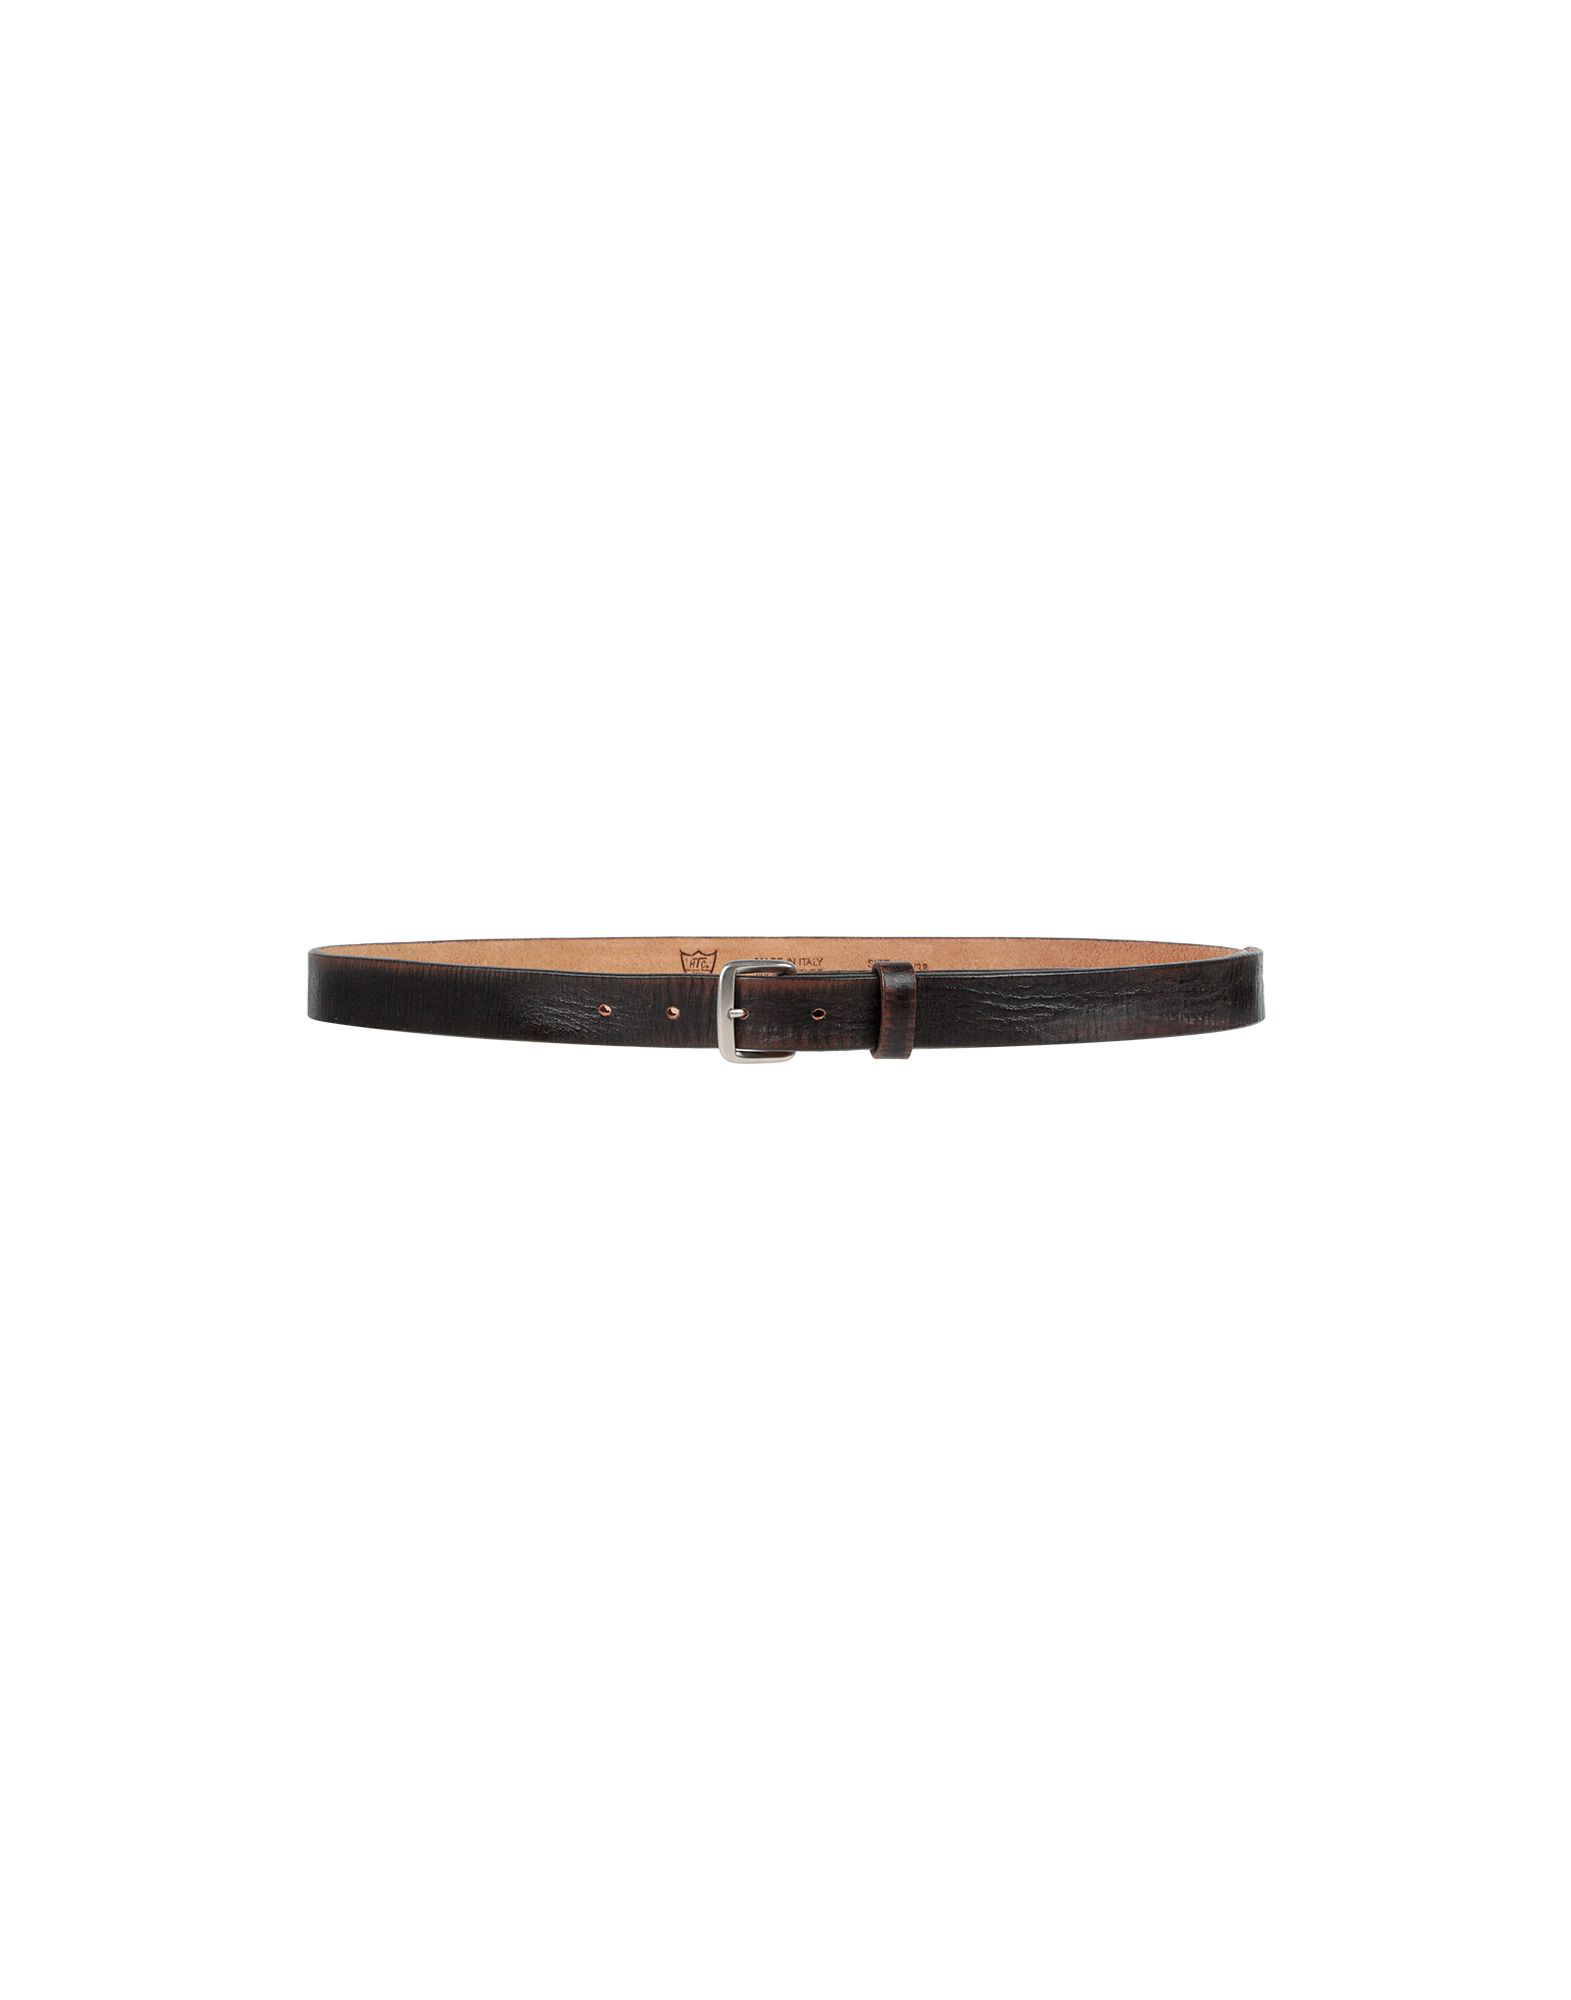 Htc Leather Belt In Dark Brown